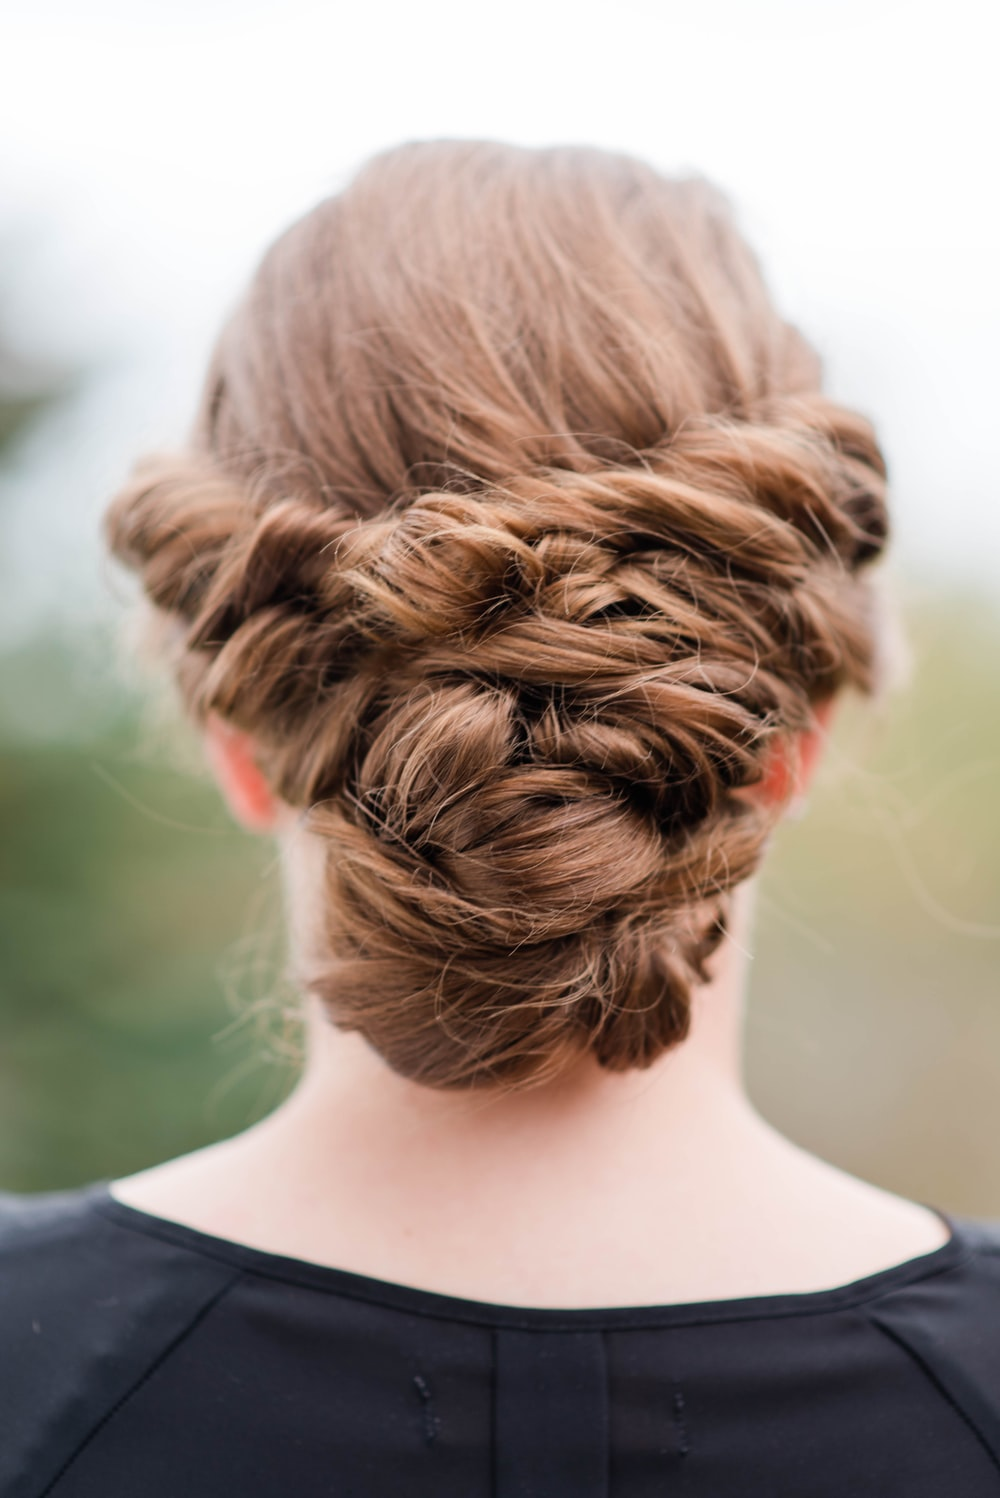 woman with tied brunette hair